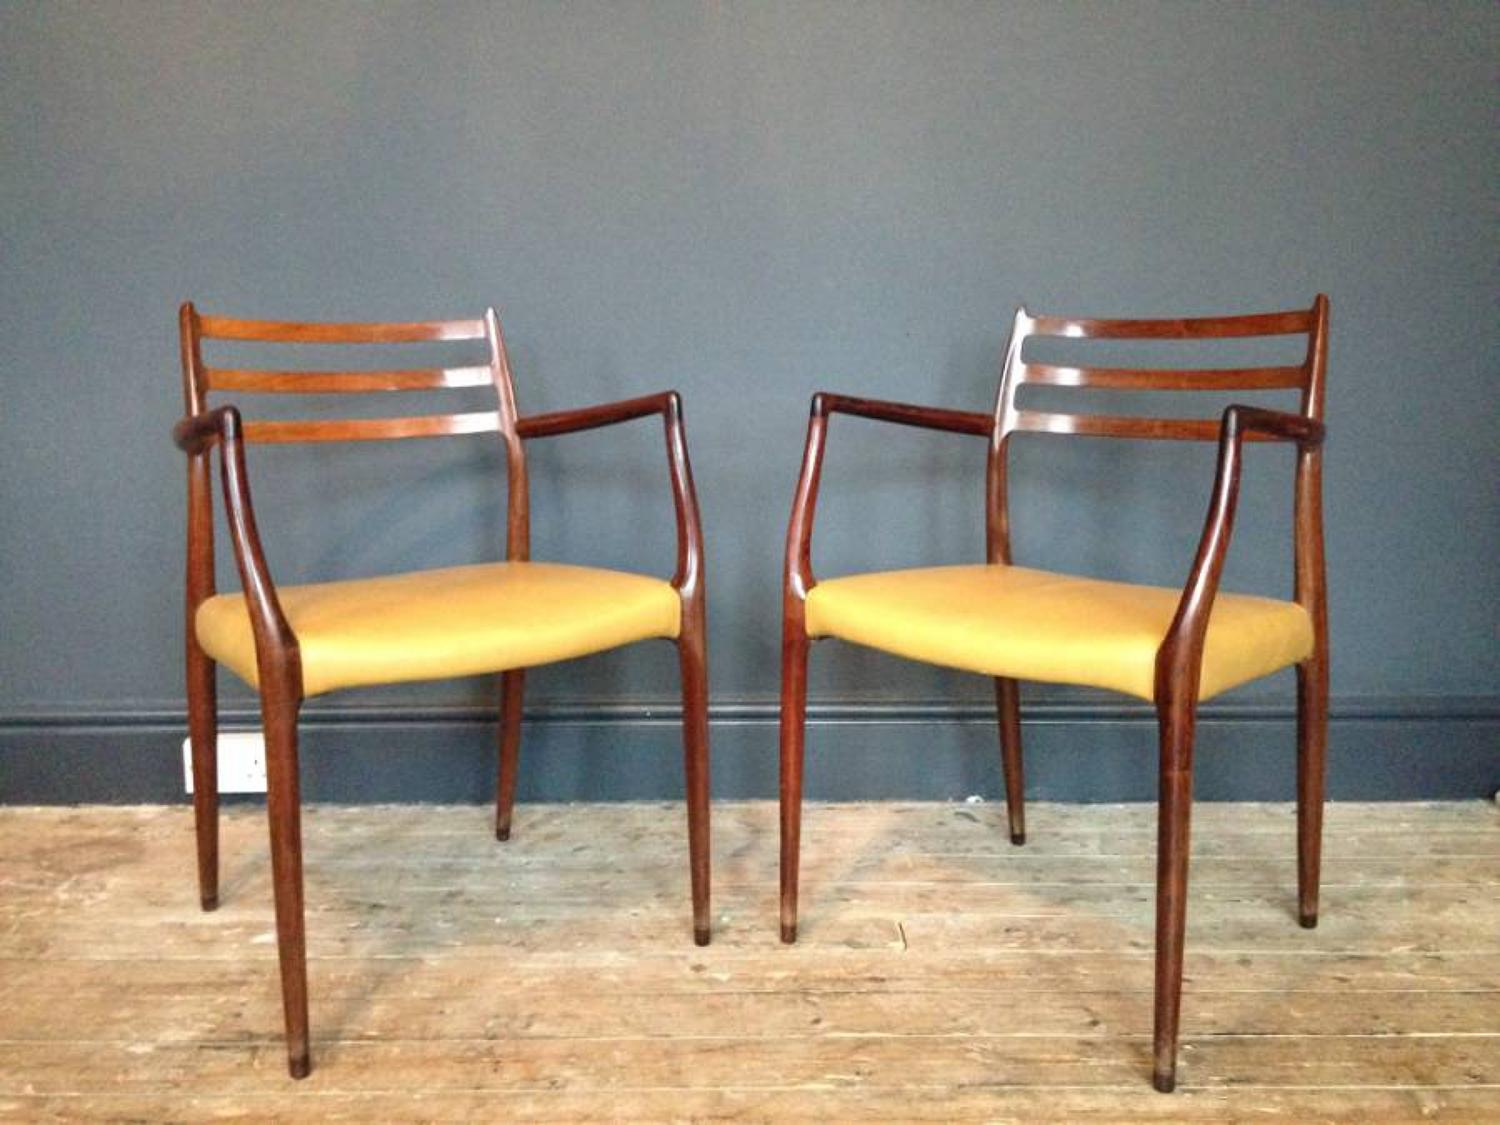 A pair of rosewood armchairs by Niels Moller